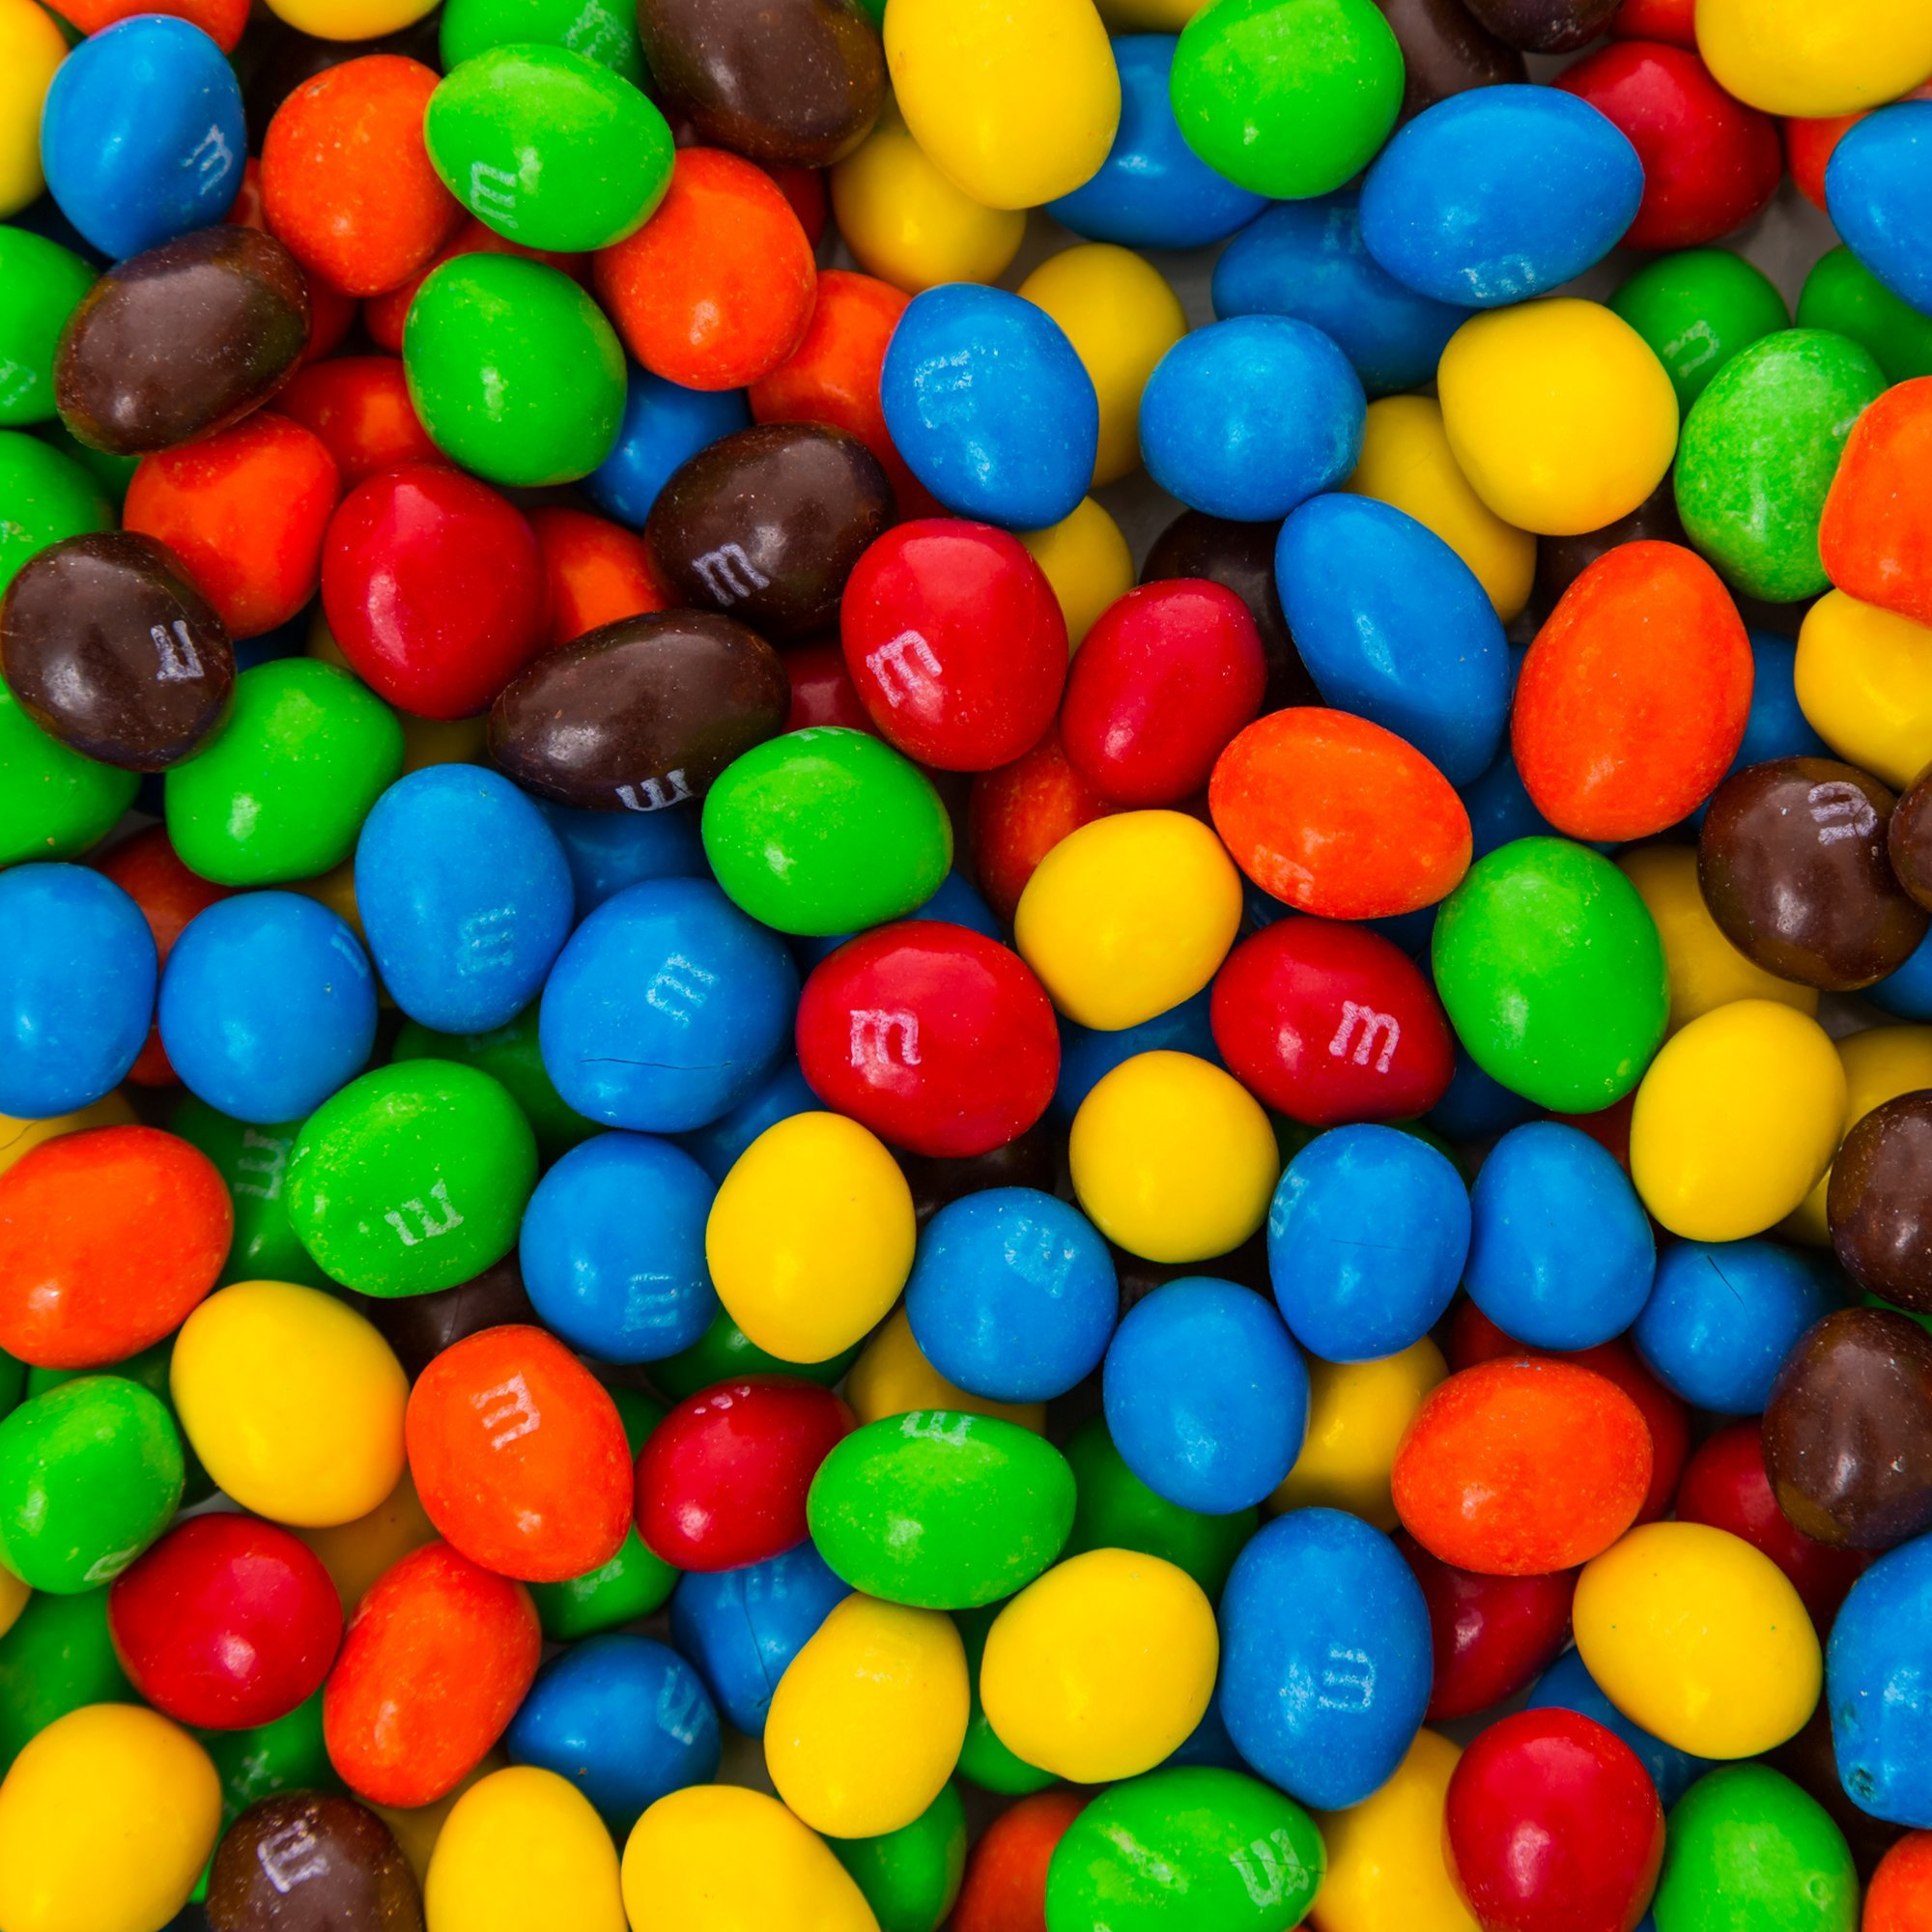 Bulk Peanut M&Ms in Resealable Bomber Bag, Wholesale Chocolate & Peanut Candy (5lb Bag) by Fast Fresh Nuts (Image #2)